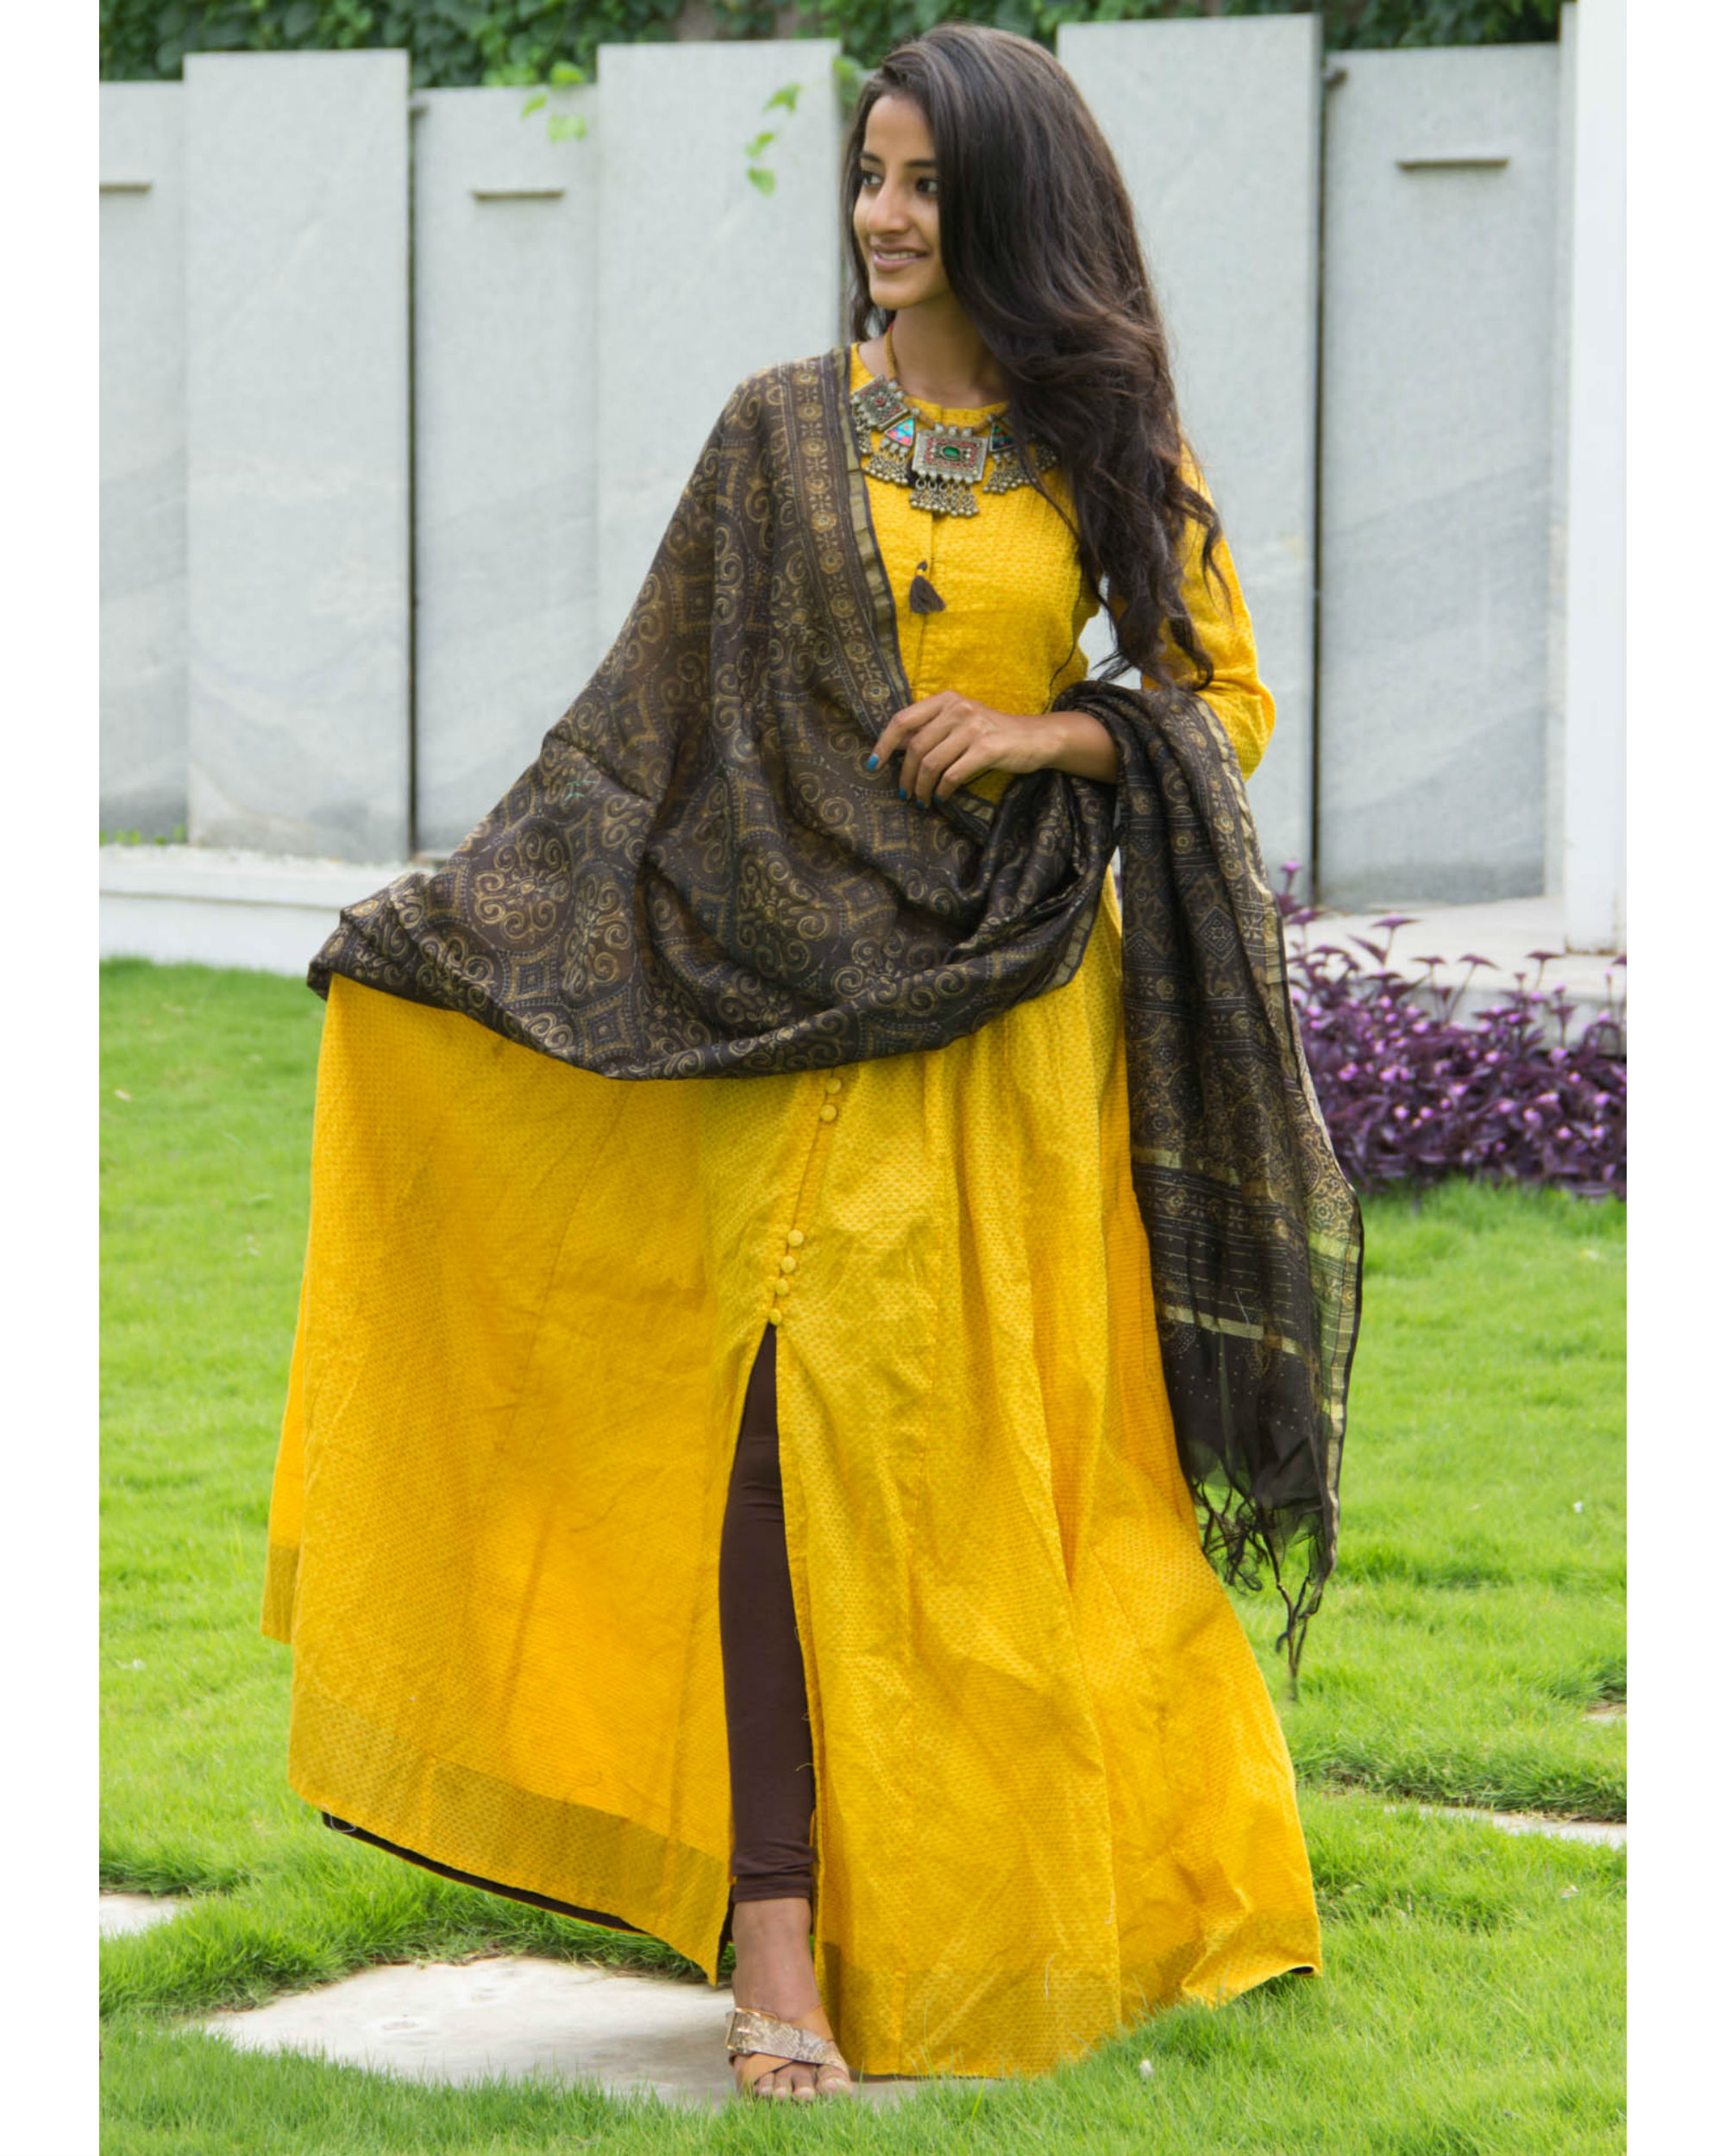 Dandelion tunic with dupatta